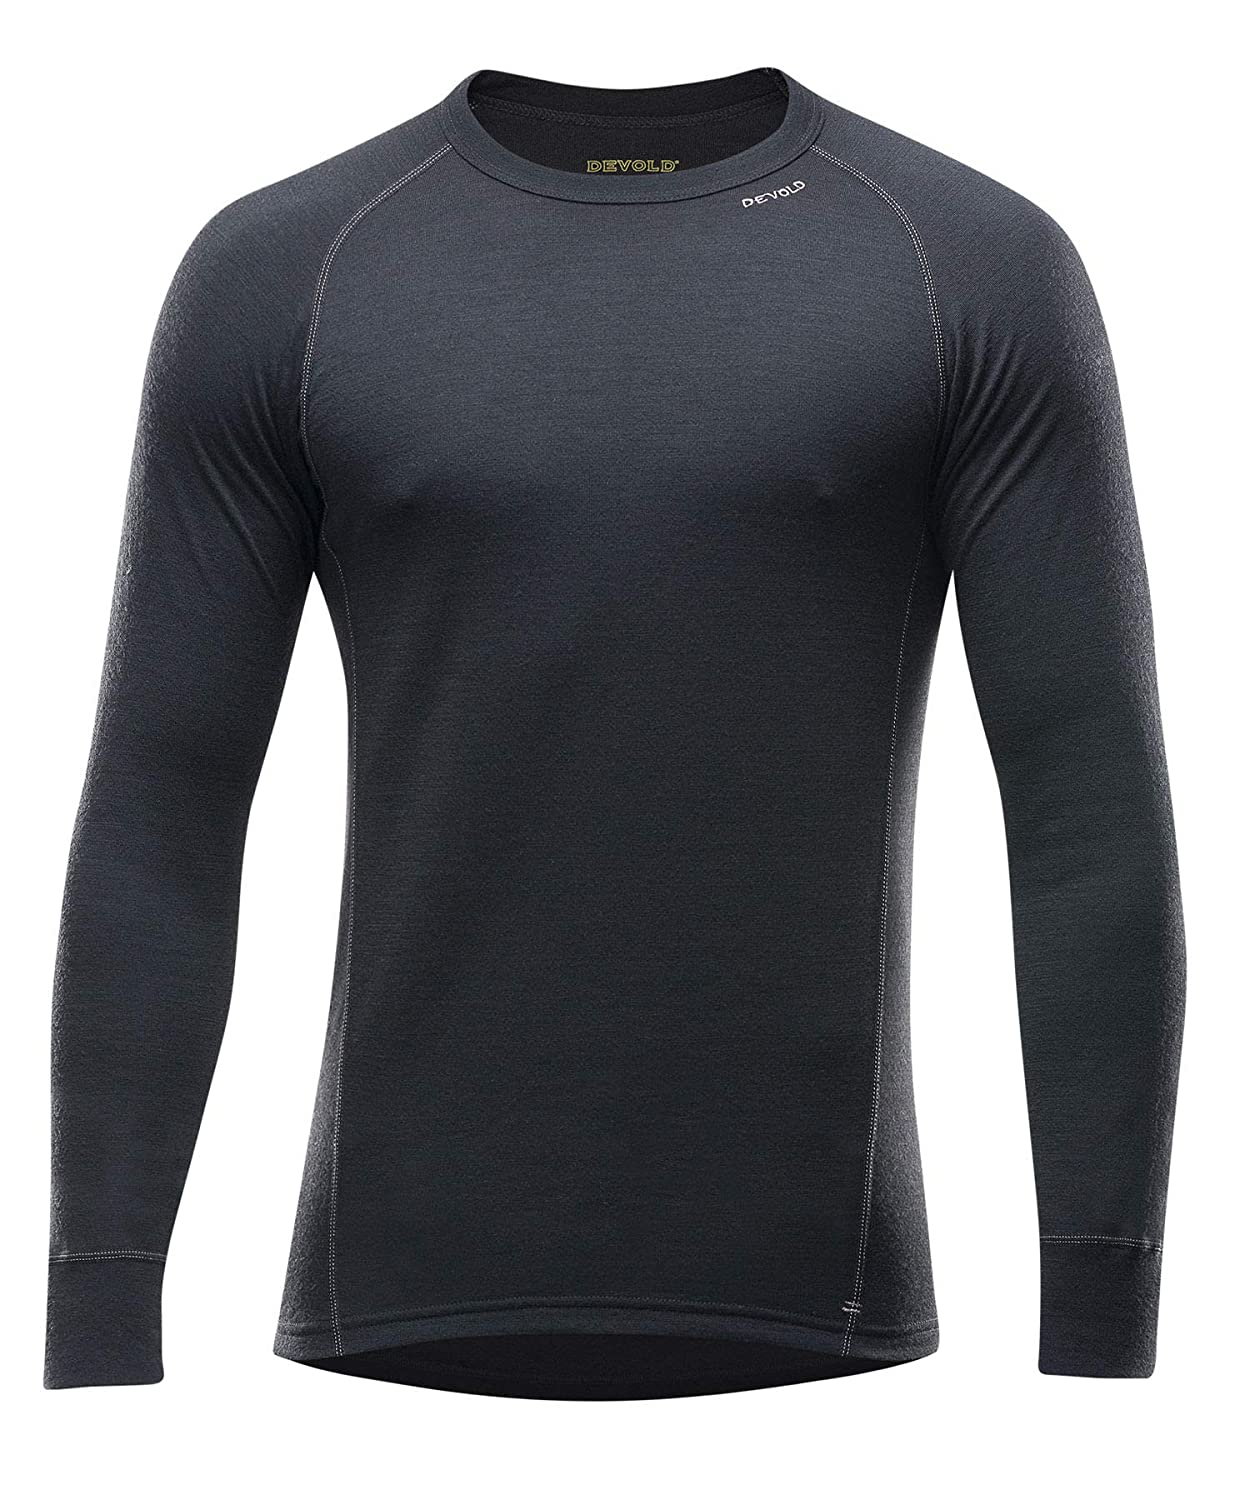 Devold Herren Funktionsshirt Duo Active